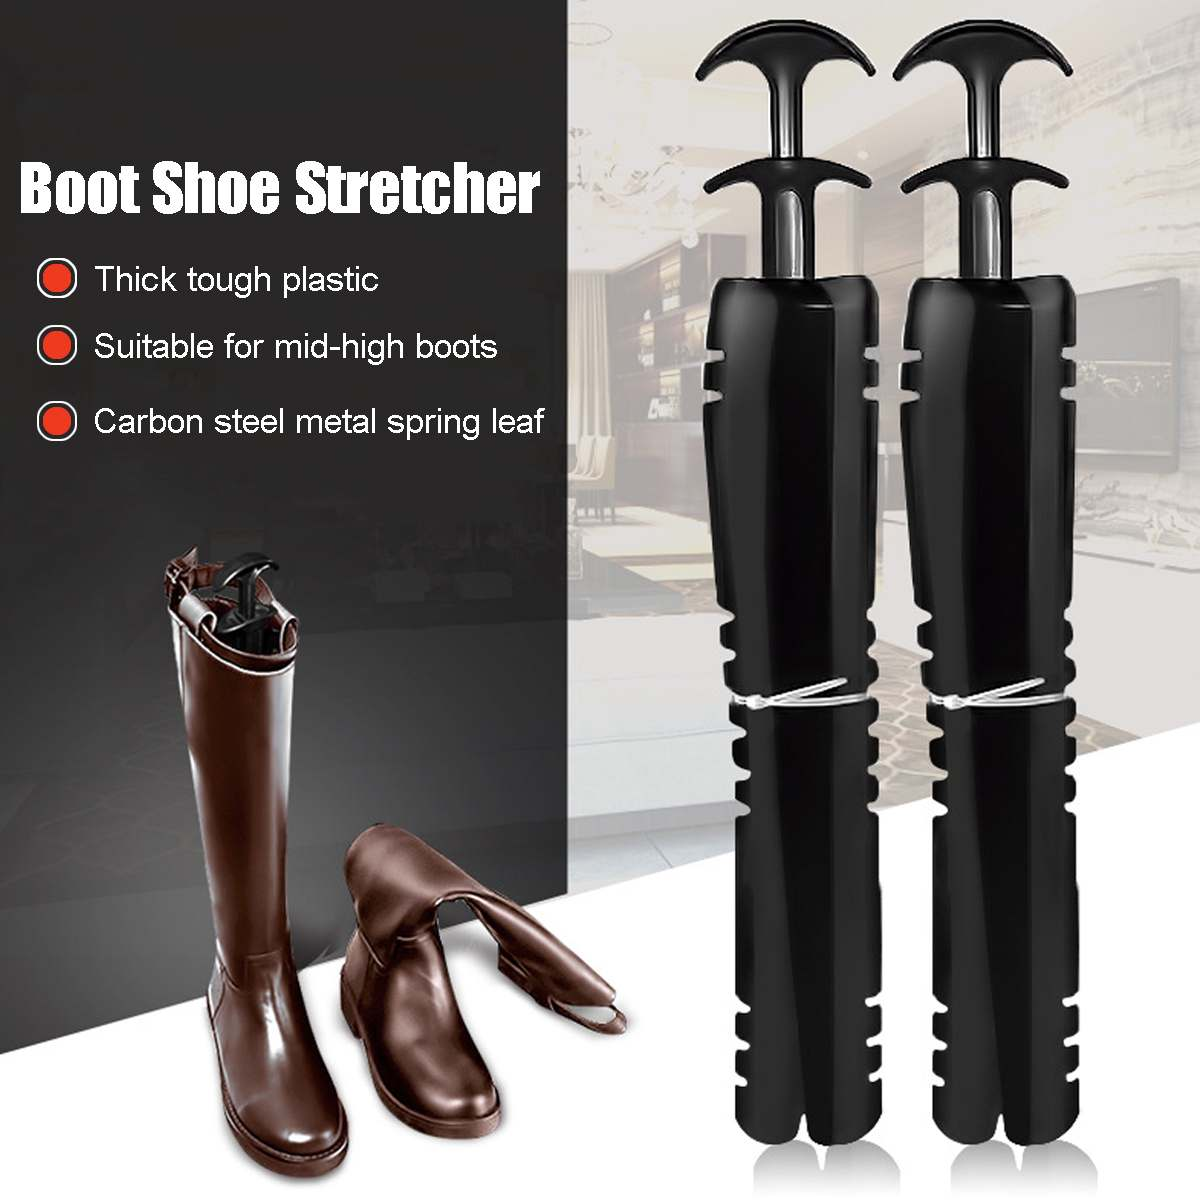 16 Inch 41cm Boot Shoe Stretcher Tree Shaper Supporter Organizer Storage Hanger Shoe Shaper Boots 1 Pair With Handle